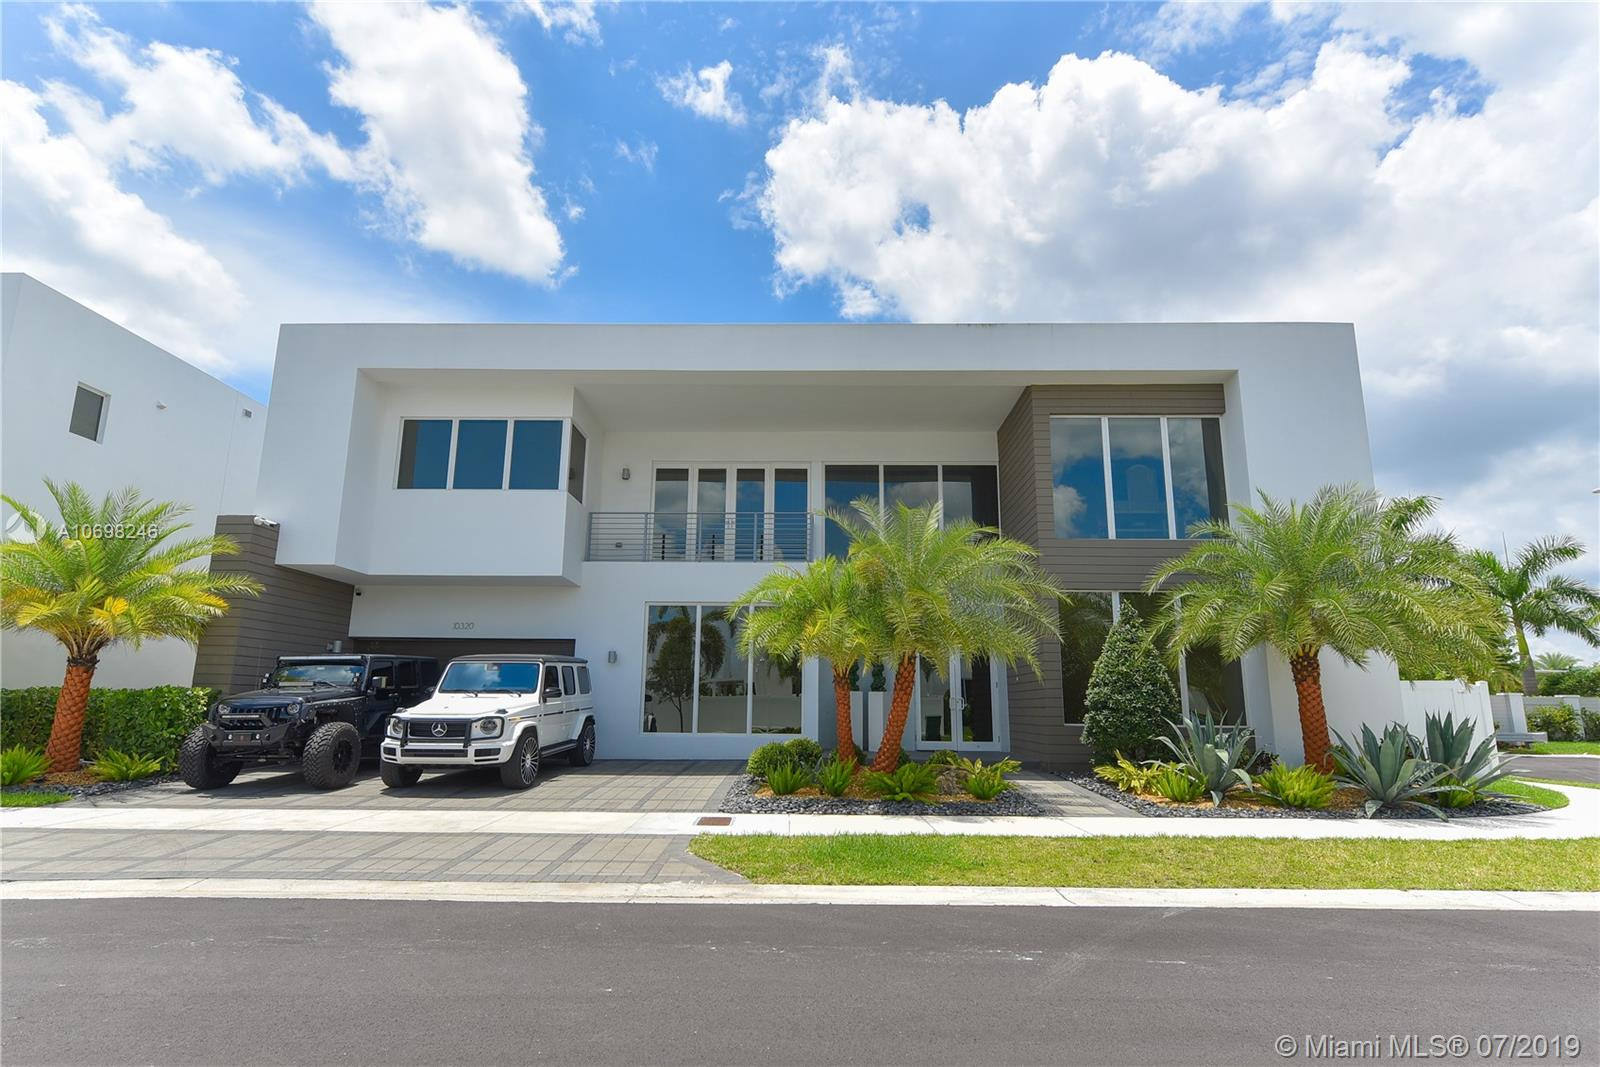 10320 NW 74th Ter, Doral, Florida